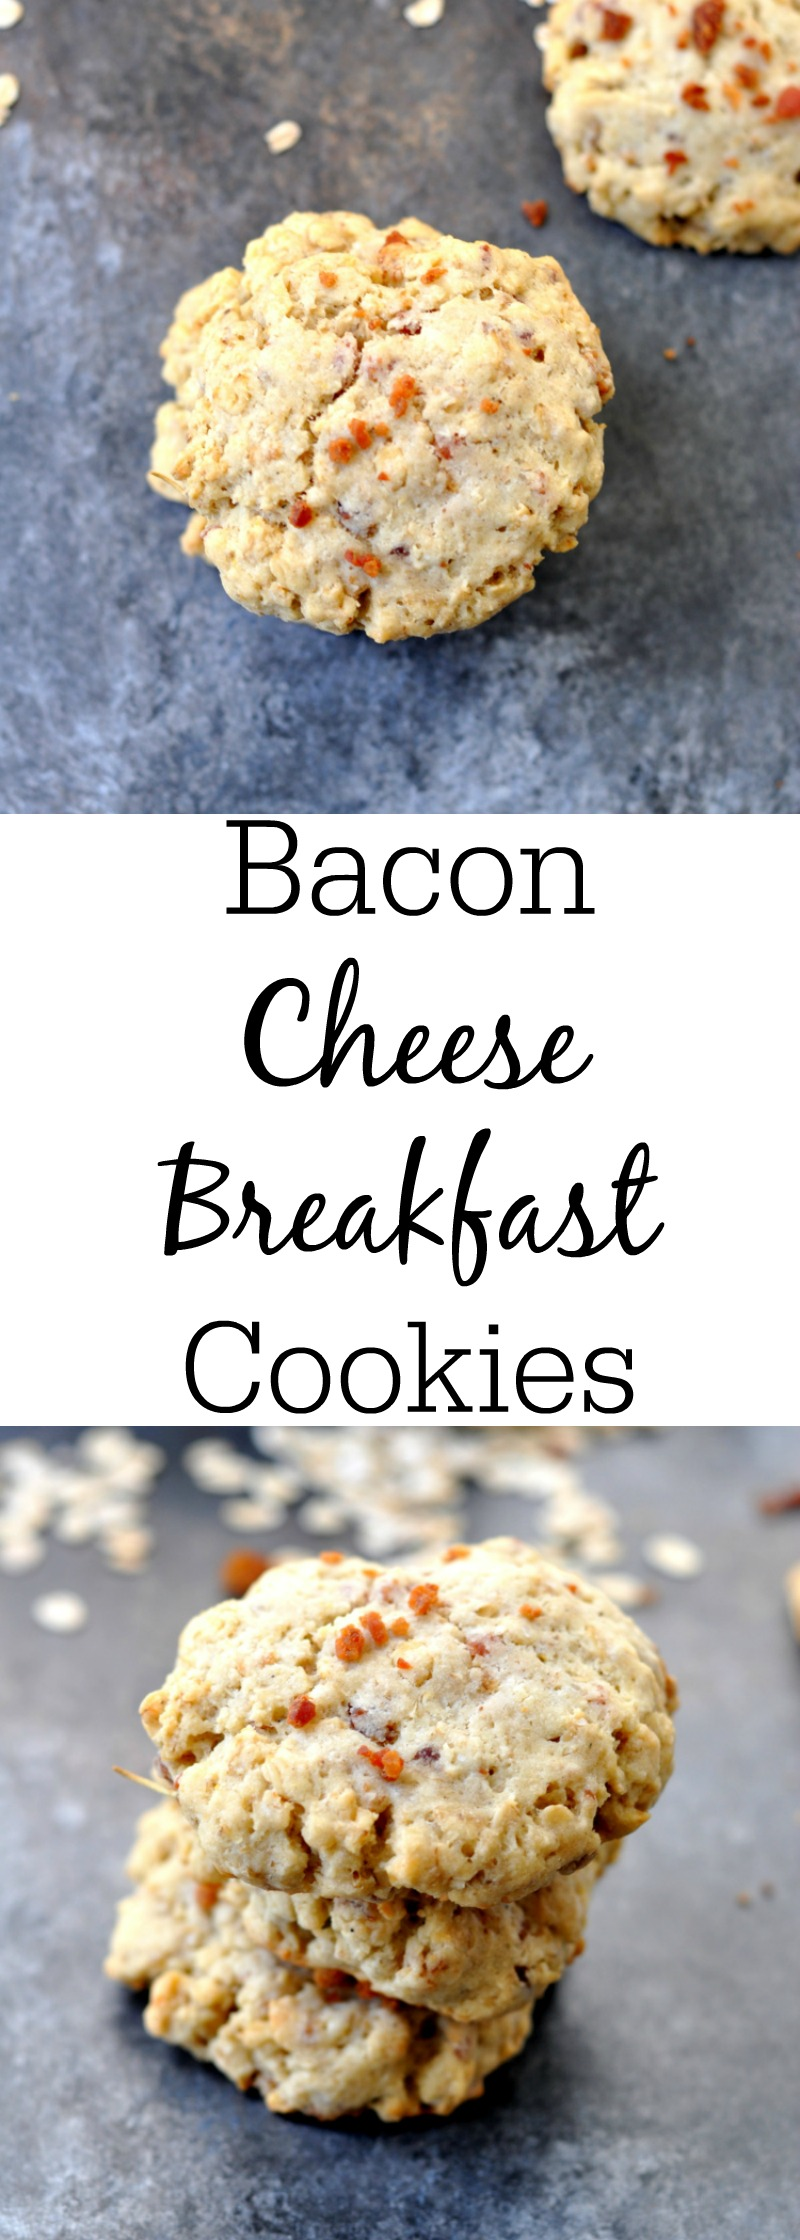 Bacon Cheese Breakfast Cookies